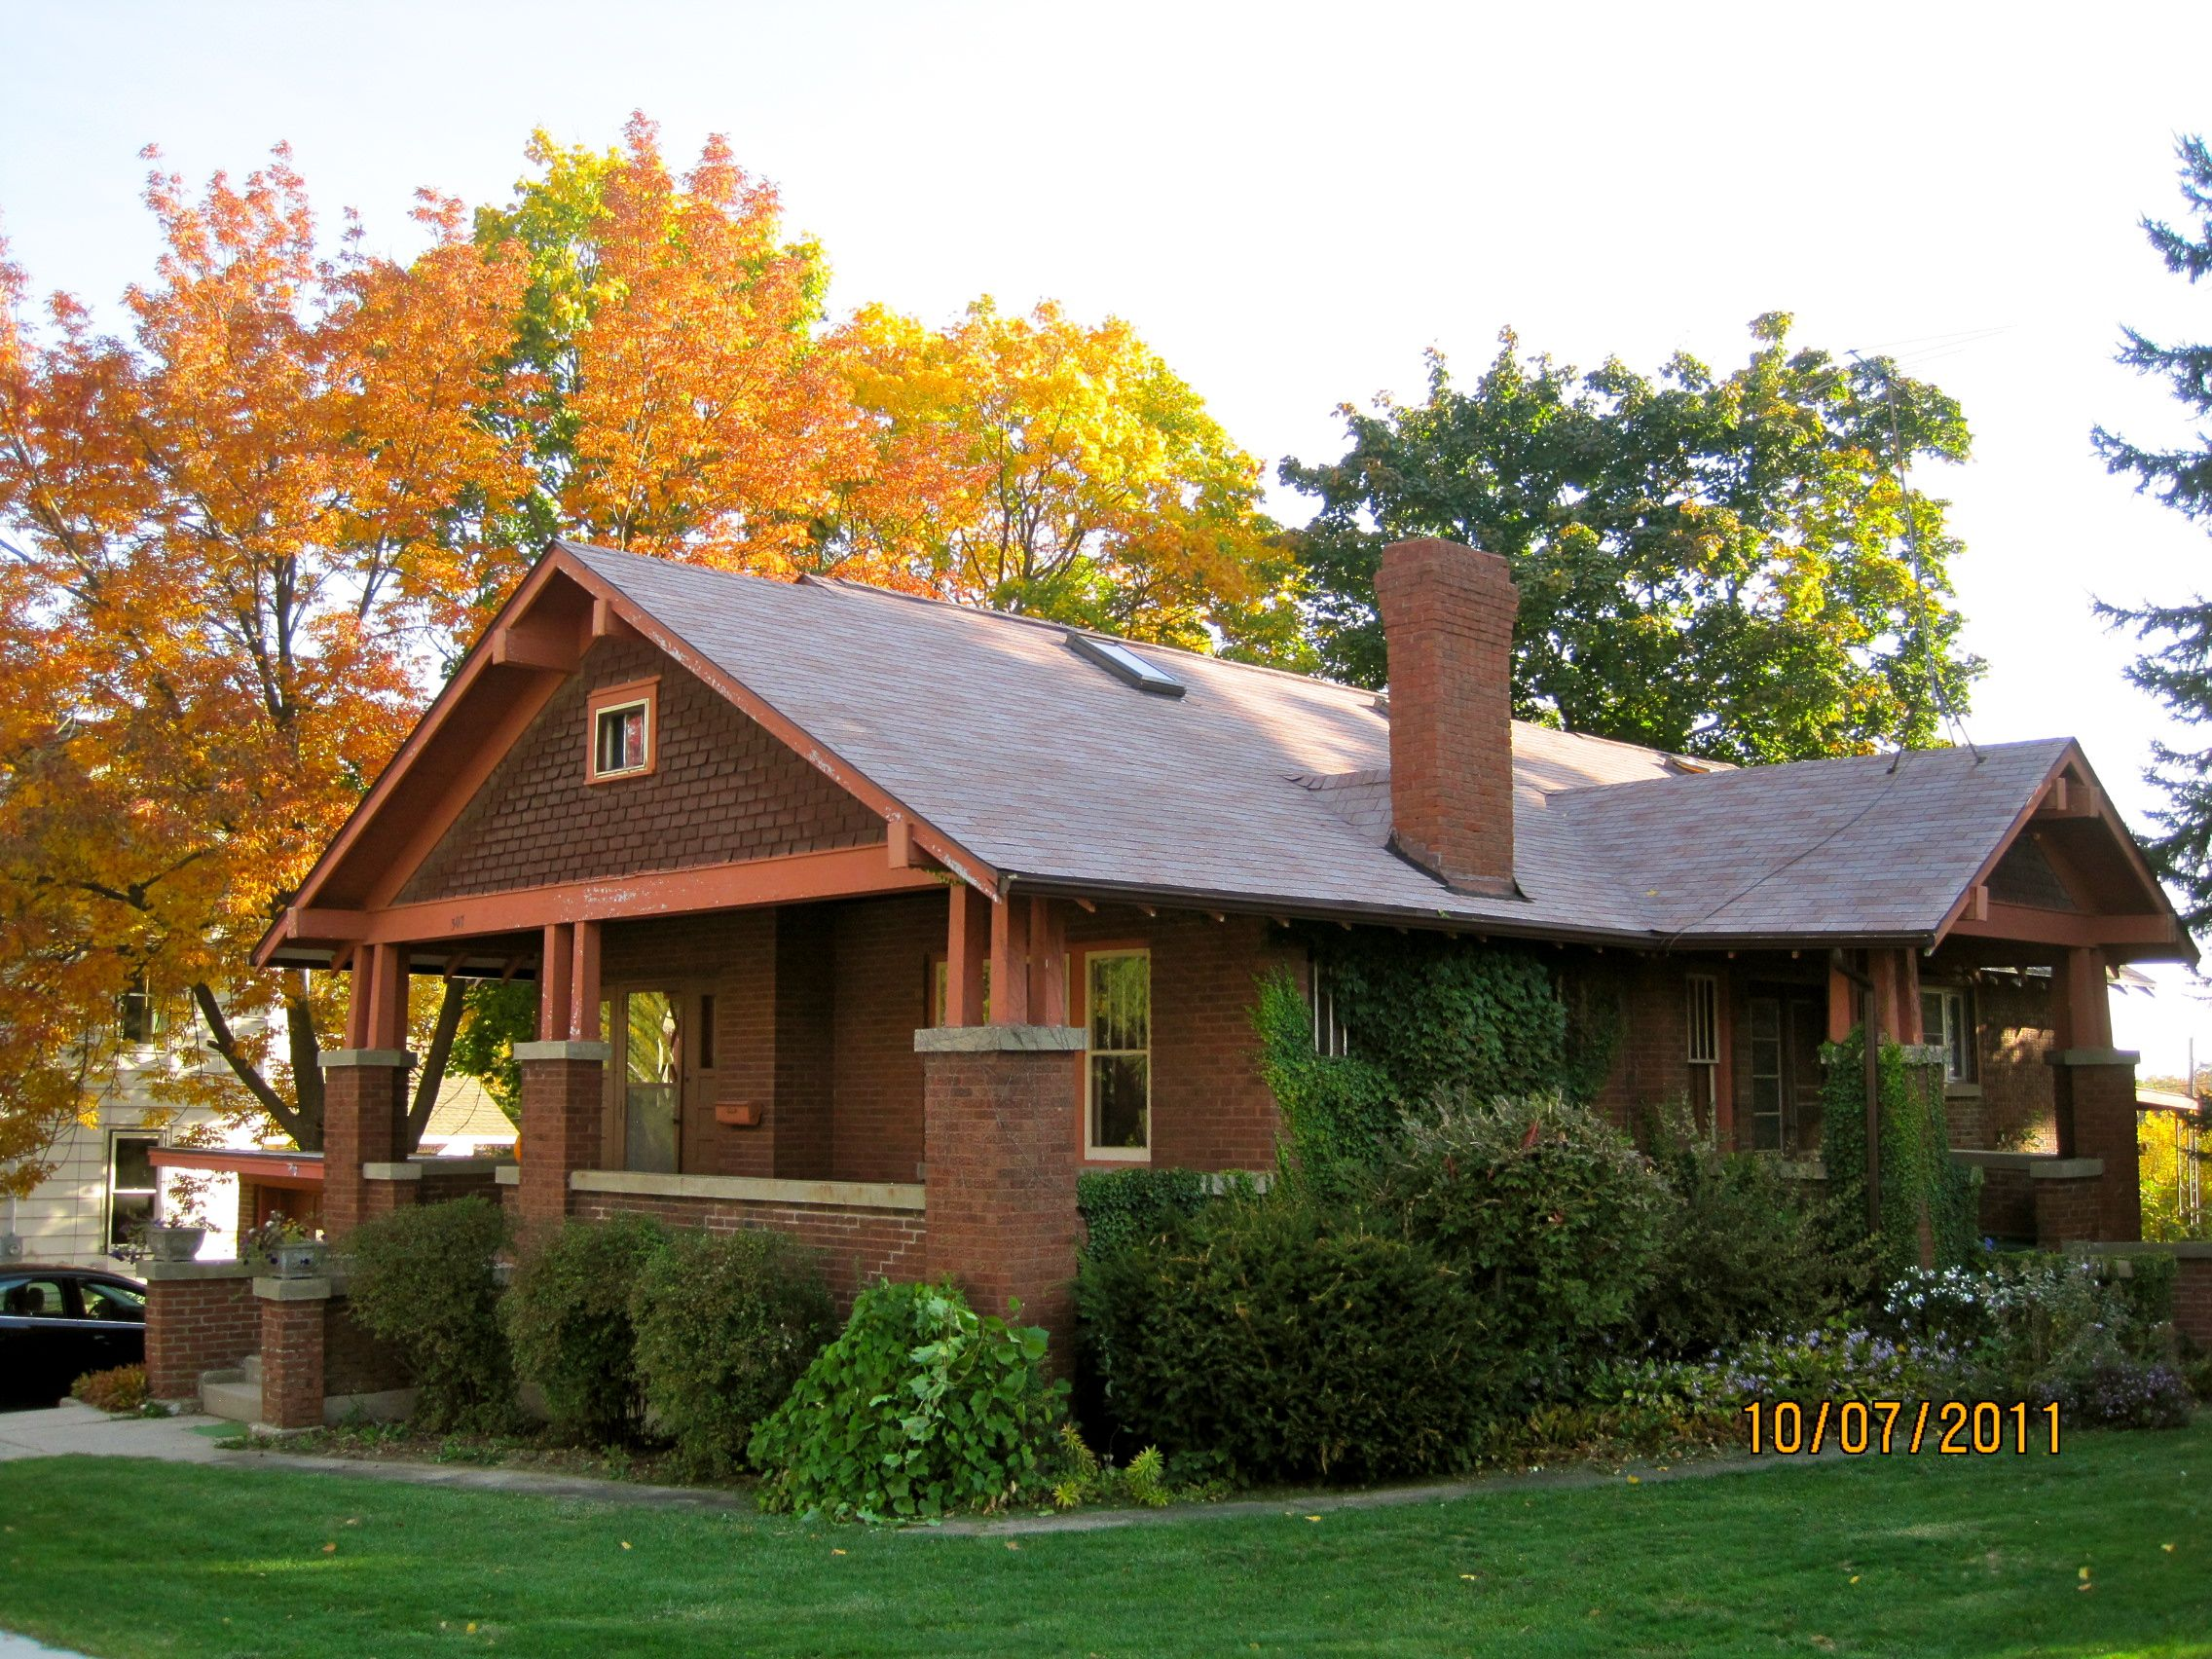 1920 Brick Craftsman Bungalow Kork Looks Like The House You Grew Up In